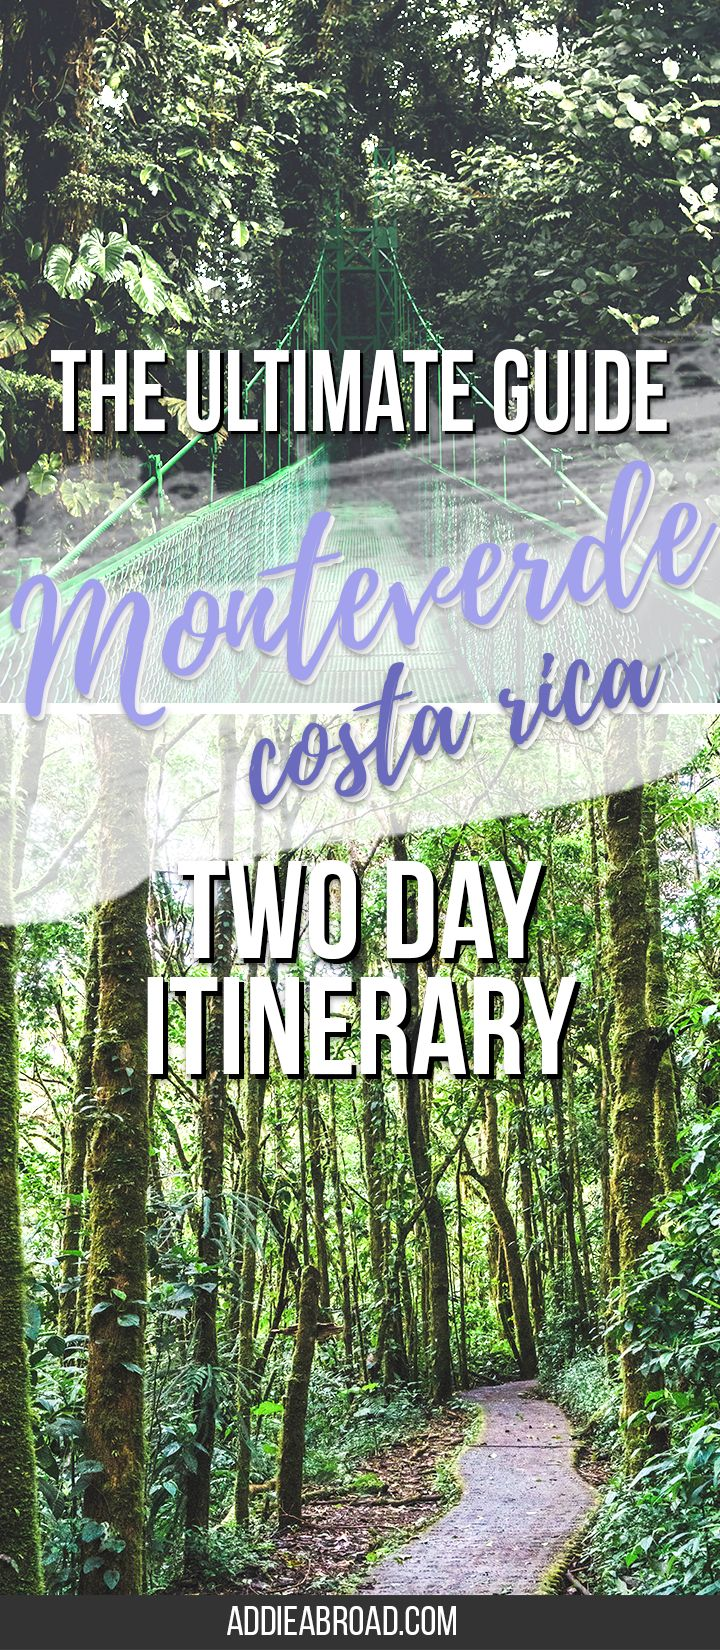 Are you visiting Costa Rica? You need to go to Monteverde! Here's how to spend a great two days in Monteverde, Costa Rica, including what to do, where to stay, and what to pack for Monteverde. via @addieabroad